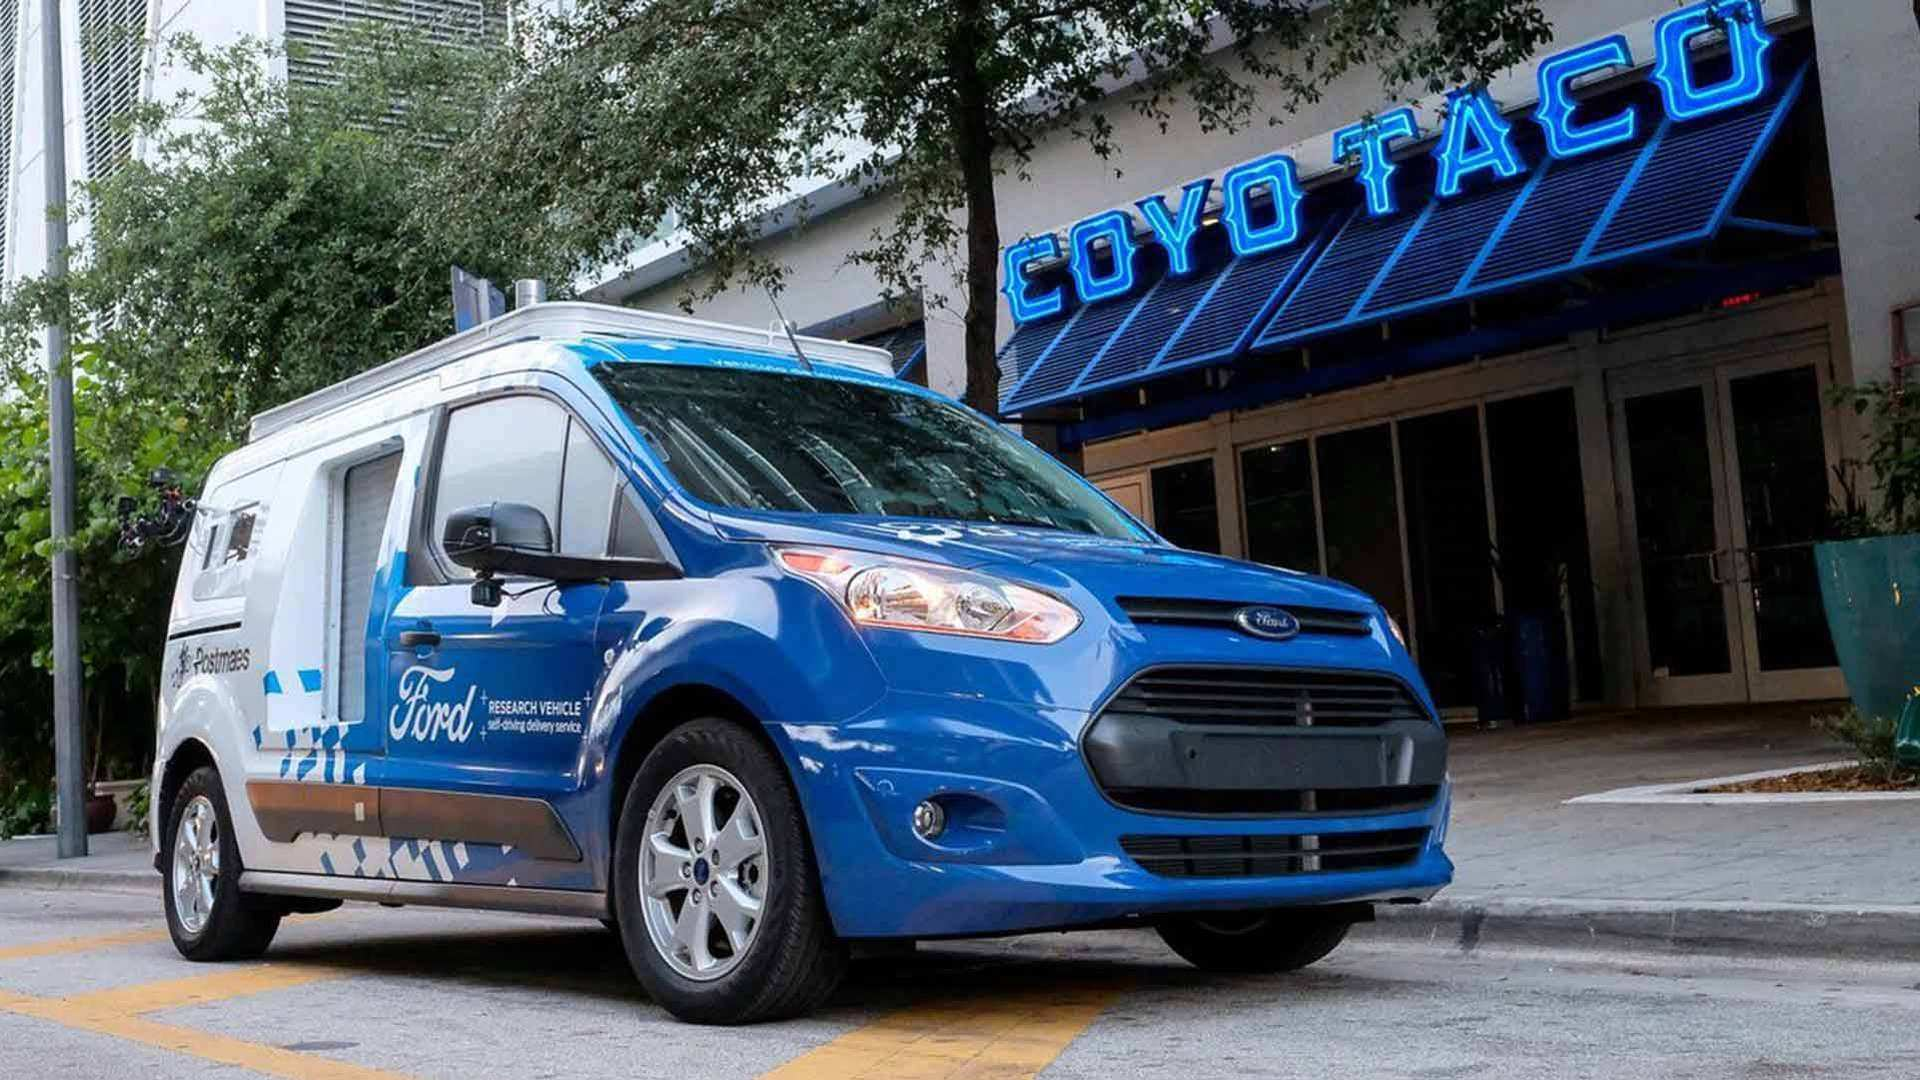 65 A Ford 2020 Driverless Images